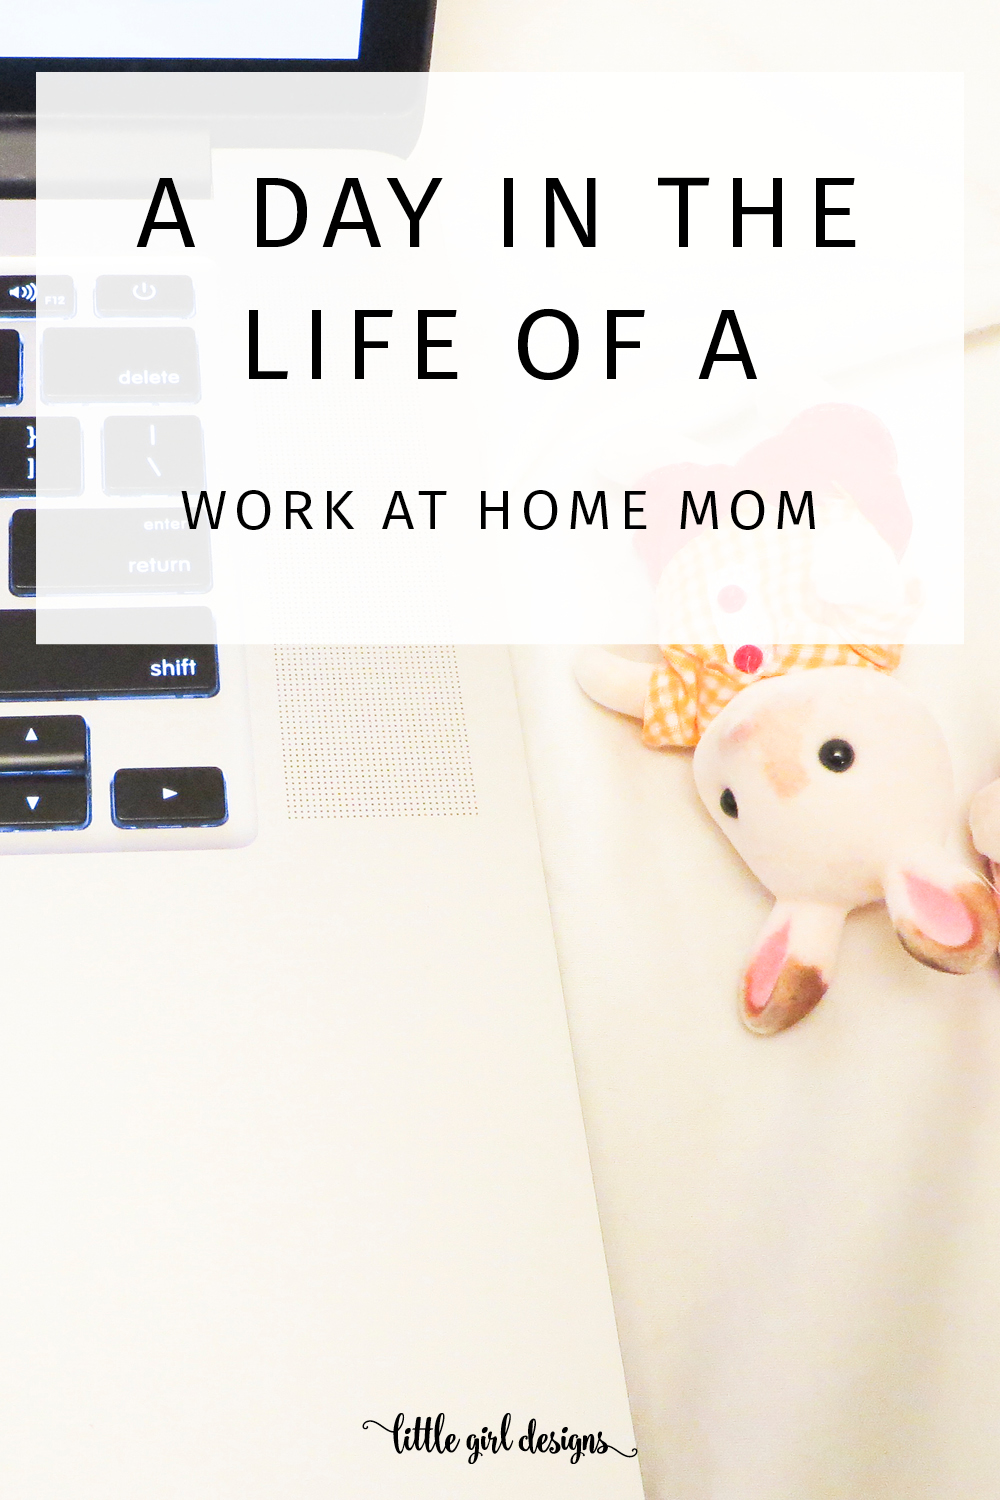 Do you dream of being a work at home mom? Want to see my schedule and see what it's really like? This is an amusing glimpse into one of my many-varied days. I love my job!